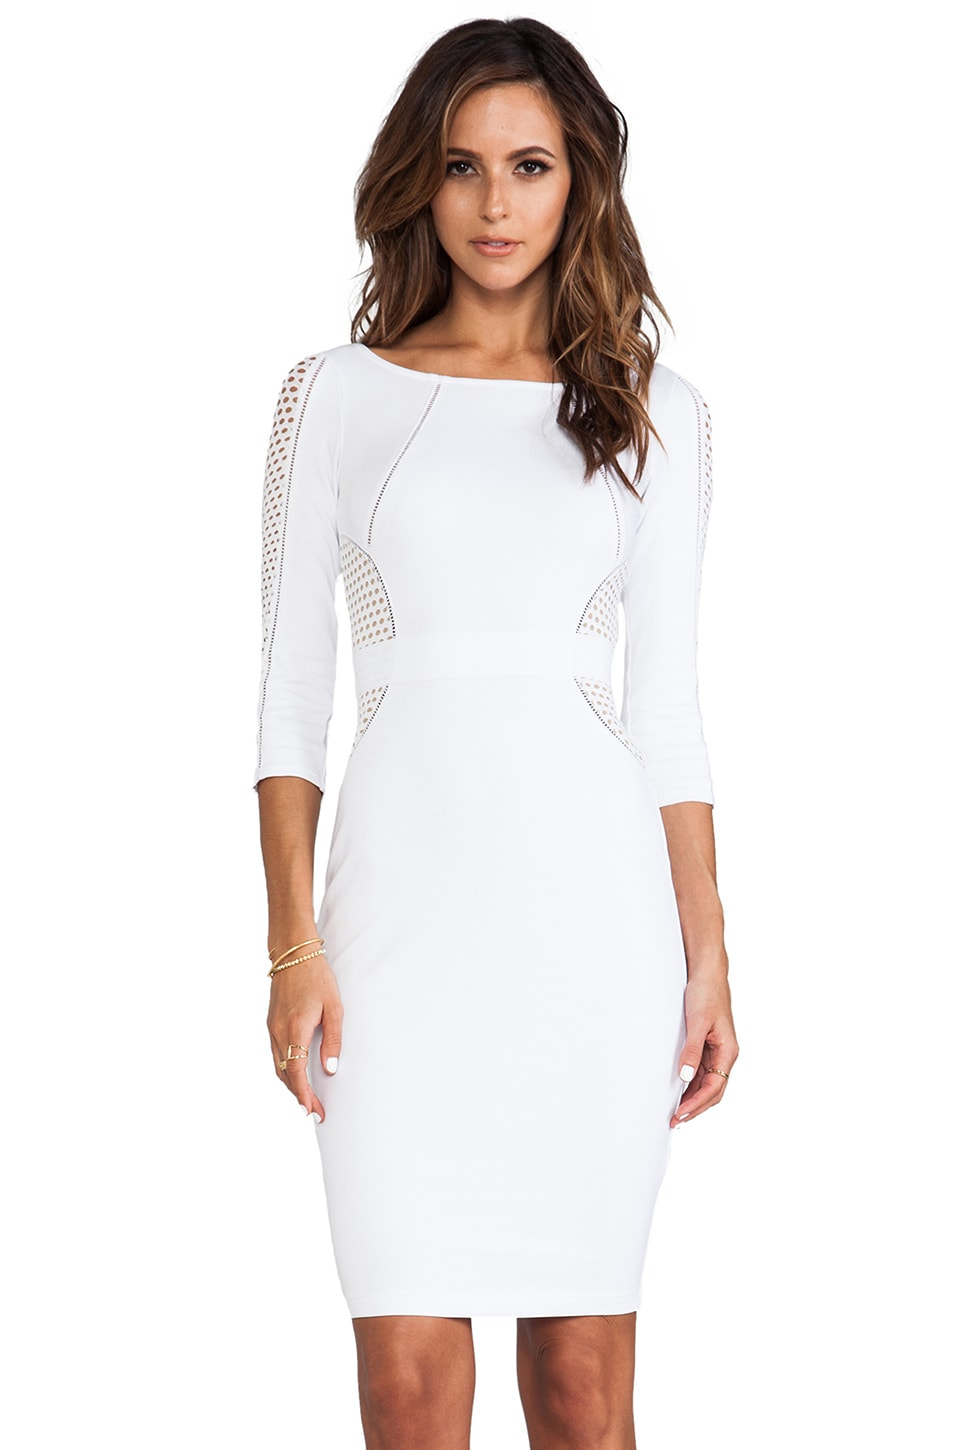 Bailey 44 Decoy Dress in White